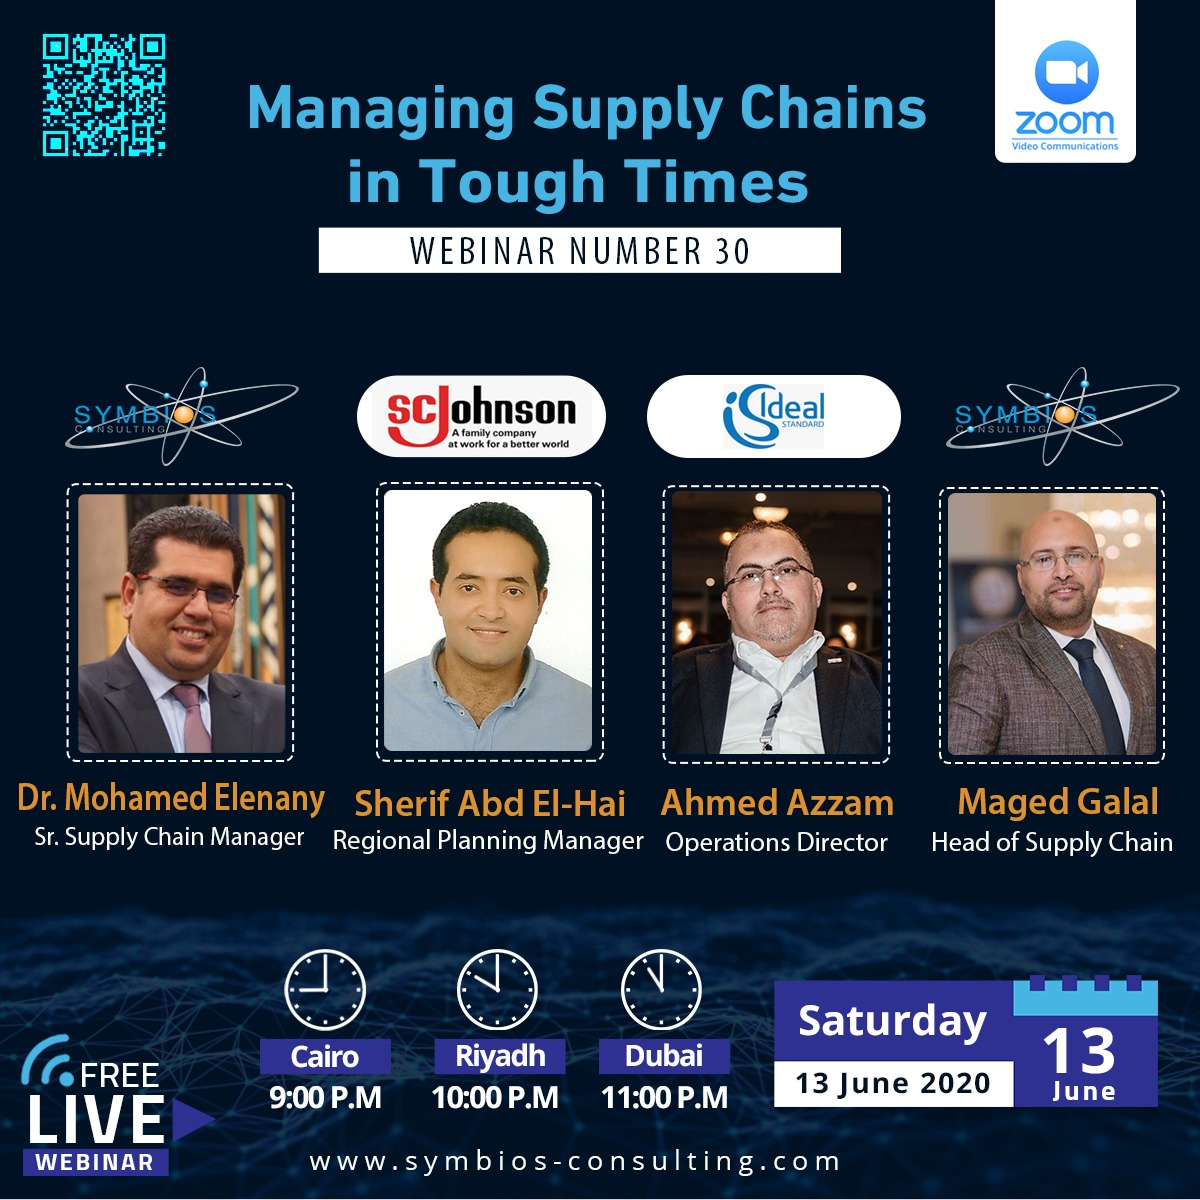 Managing Supply Chain in Tough Times